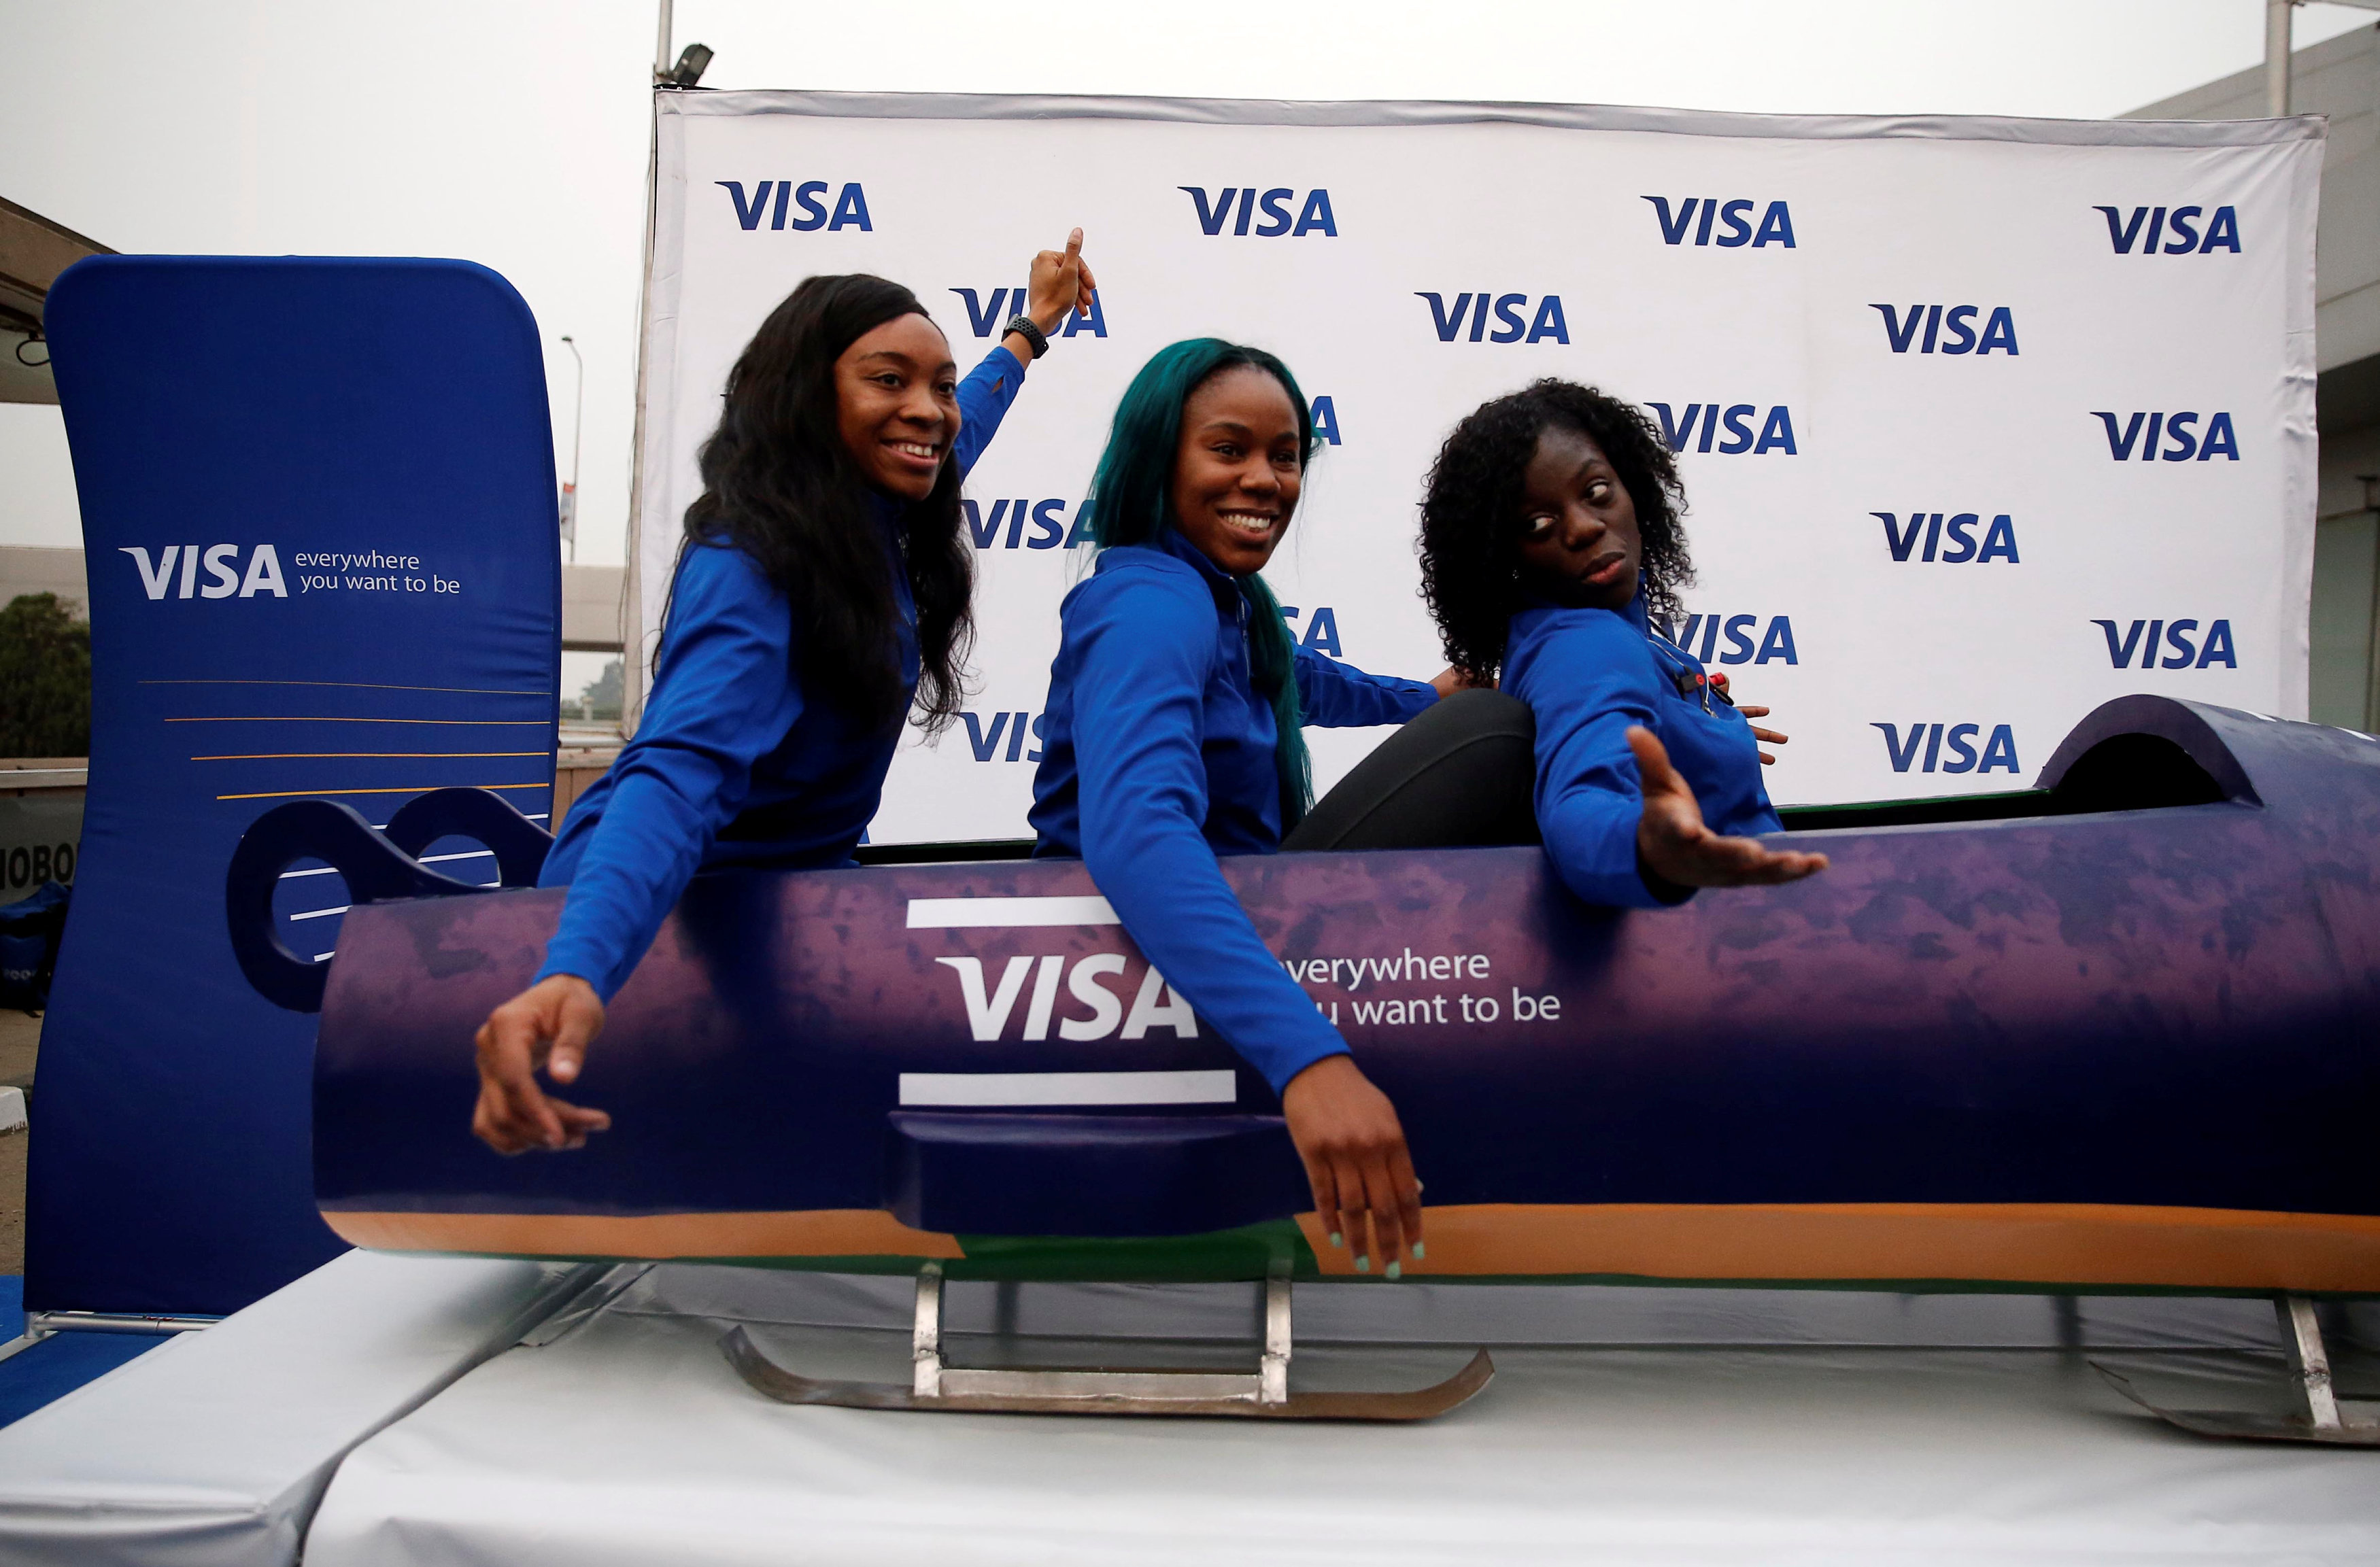 Nigerian Women's Bobsled Team Ngozi Onwumere, Akuoma Omeoga and Seun Adigun gesture in a bobsled upon their arrival in Lagos, Nigeria, as part of preparations ahead of the 2018 Pyeongchang Winter Olympic Games, February 1, 2018